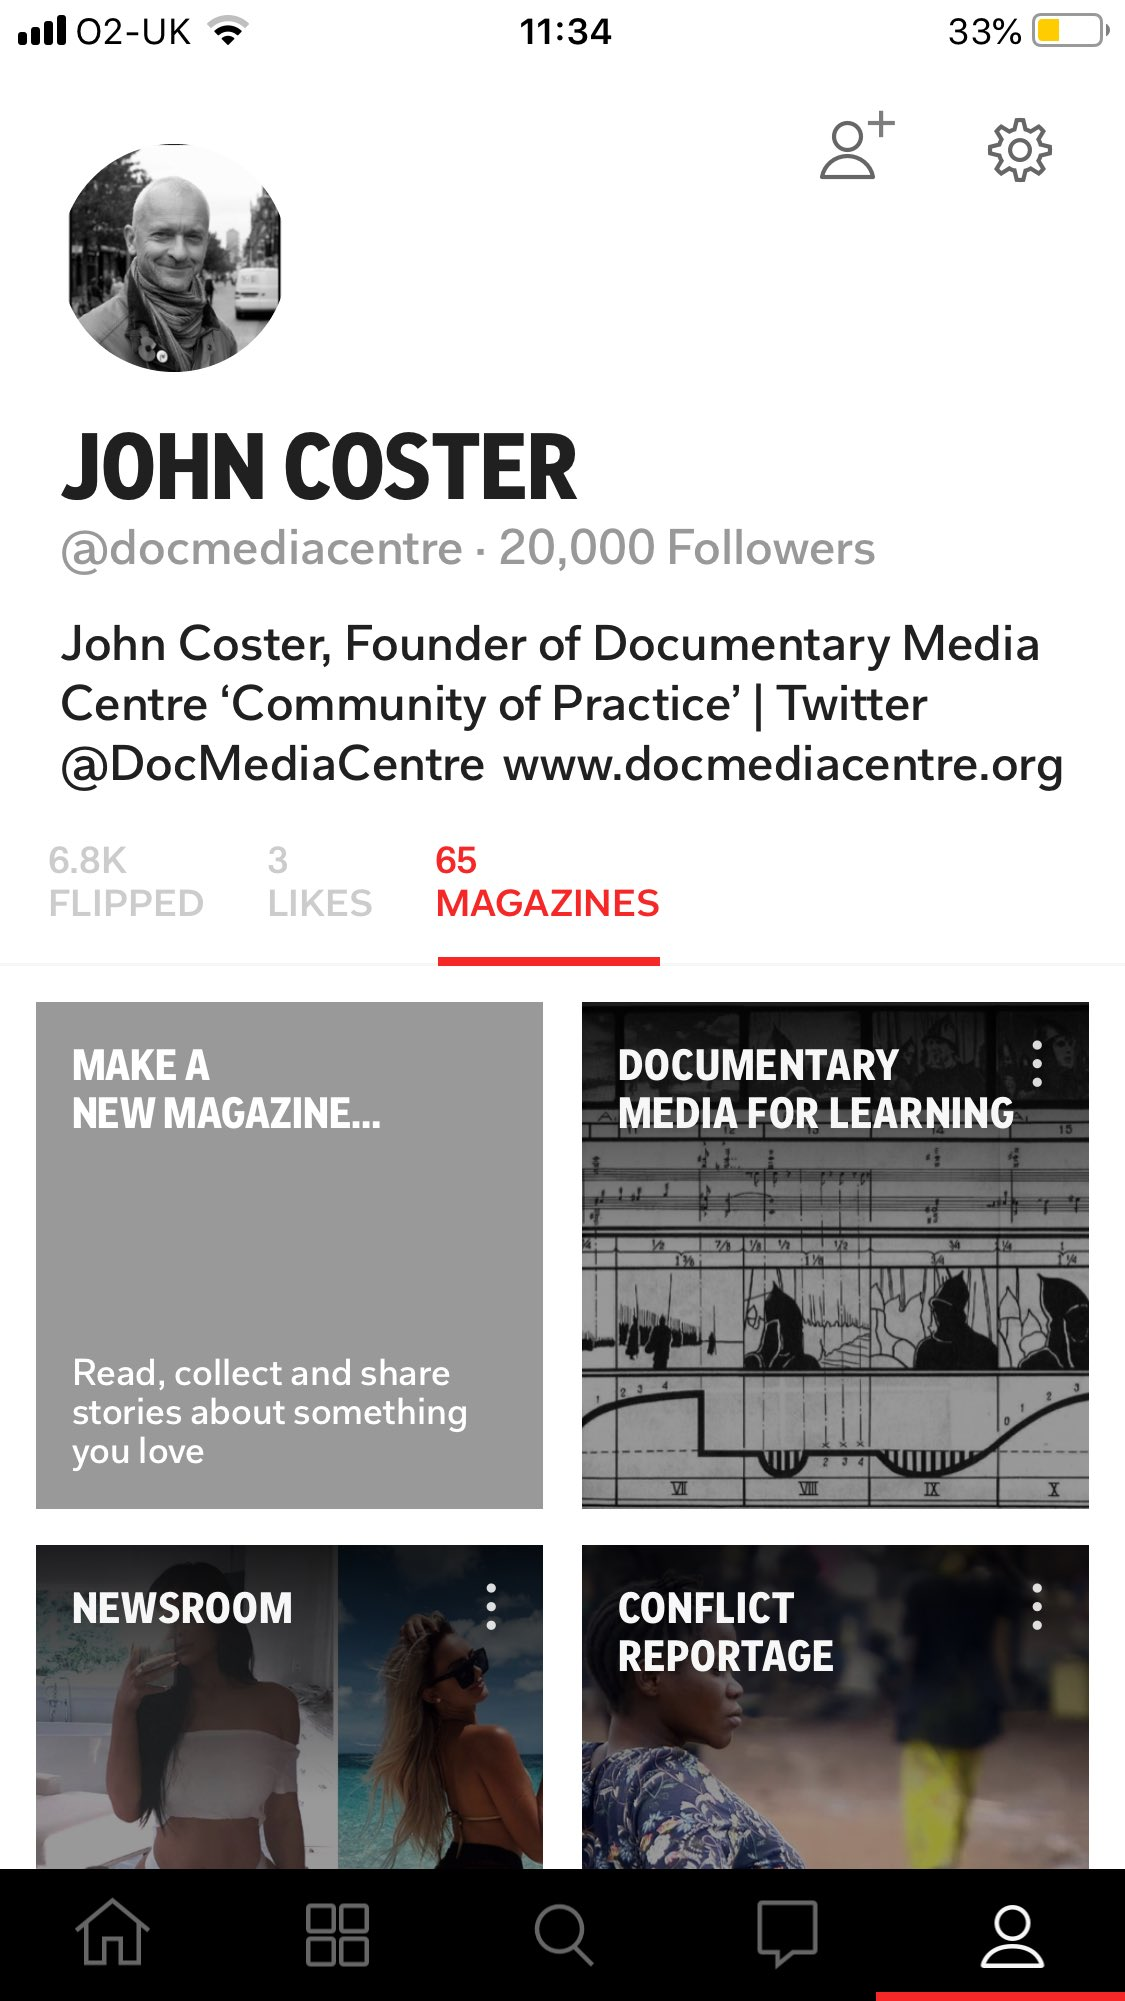 Rather chuffed to reach 20,000 followers on @Flipboard 😊 thanks to @tinawotbox for introducing me to it.... all those years ago .... still a great platform! #DocMedia2019 https://t.co/HvxfLEcnVE